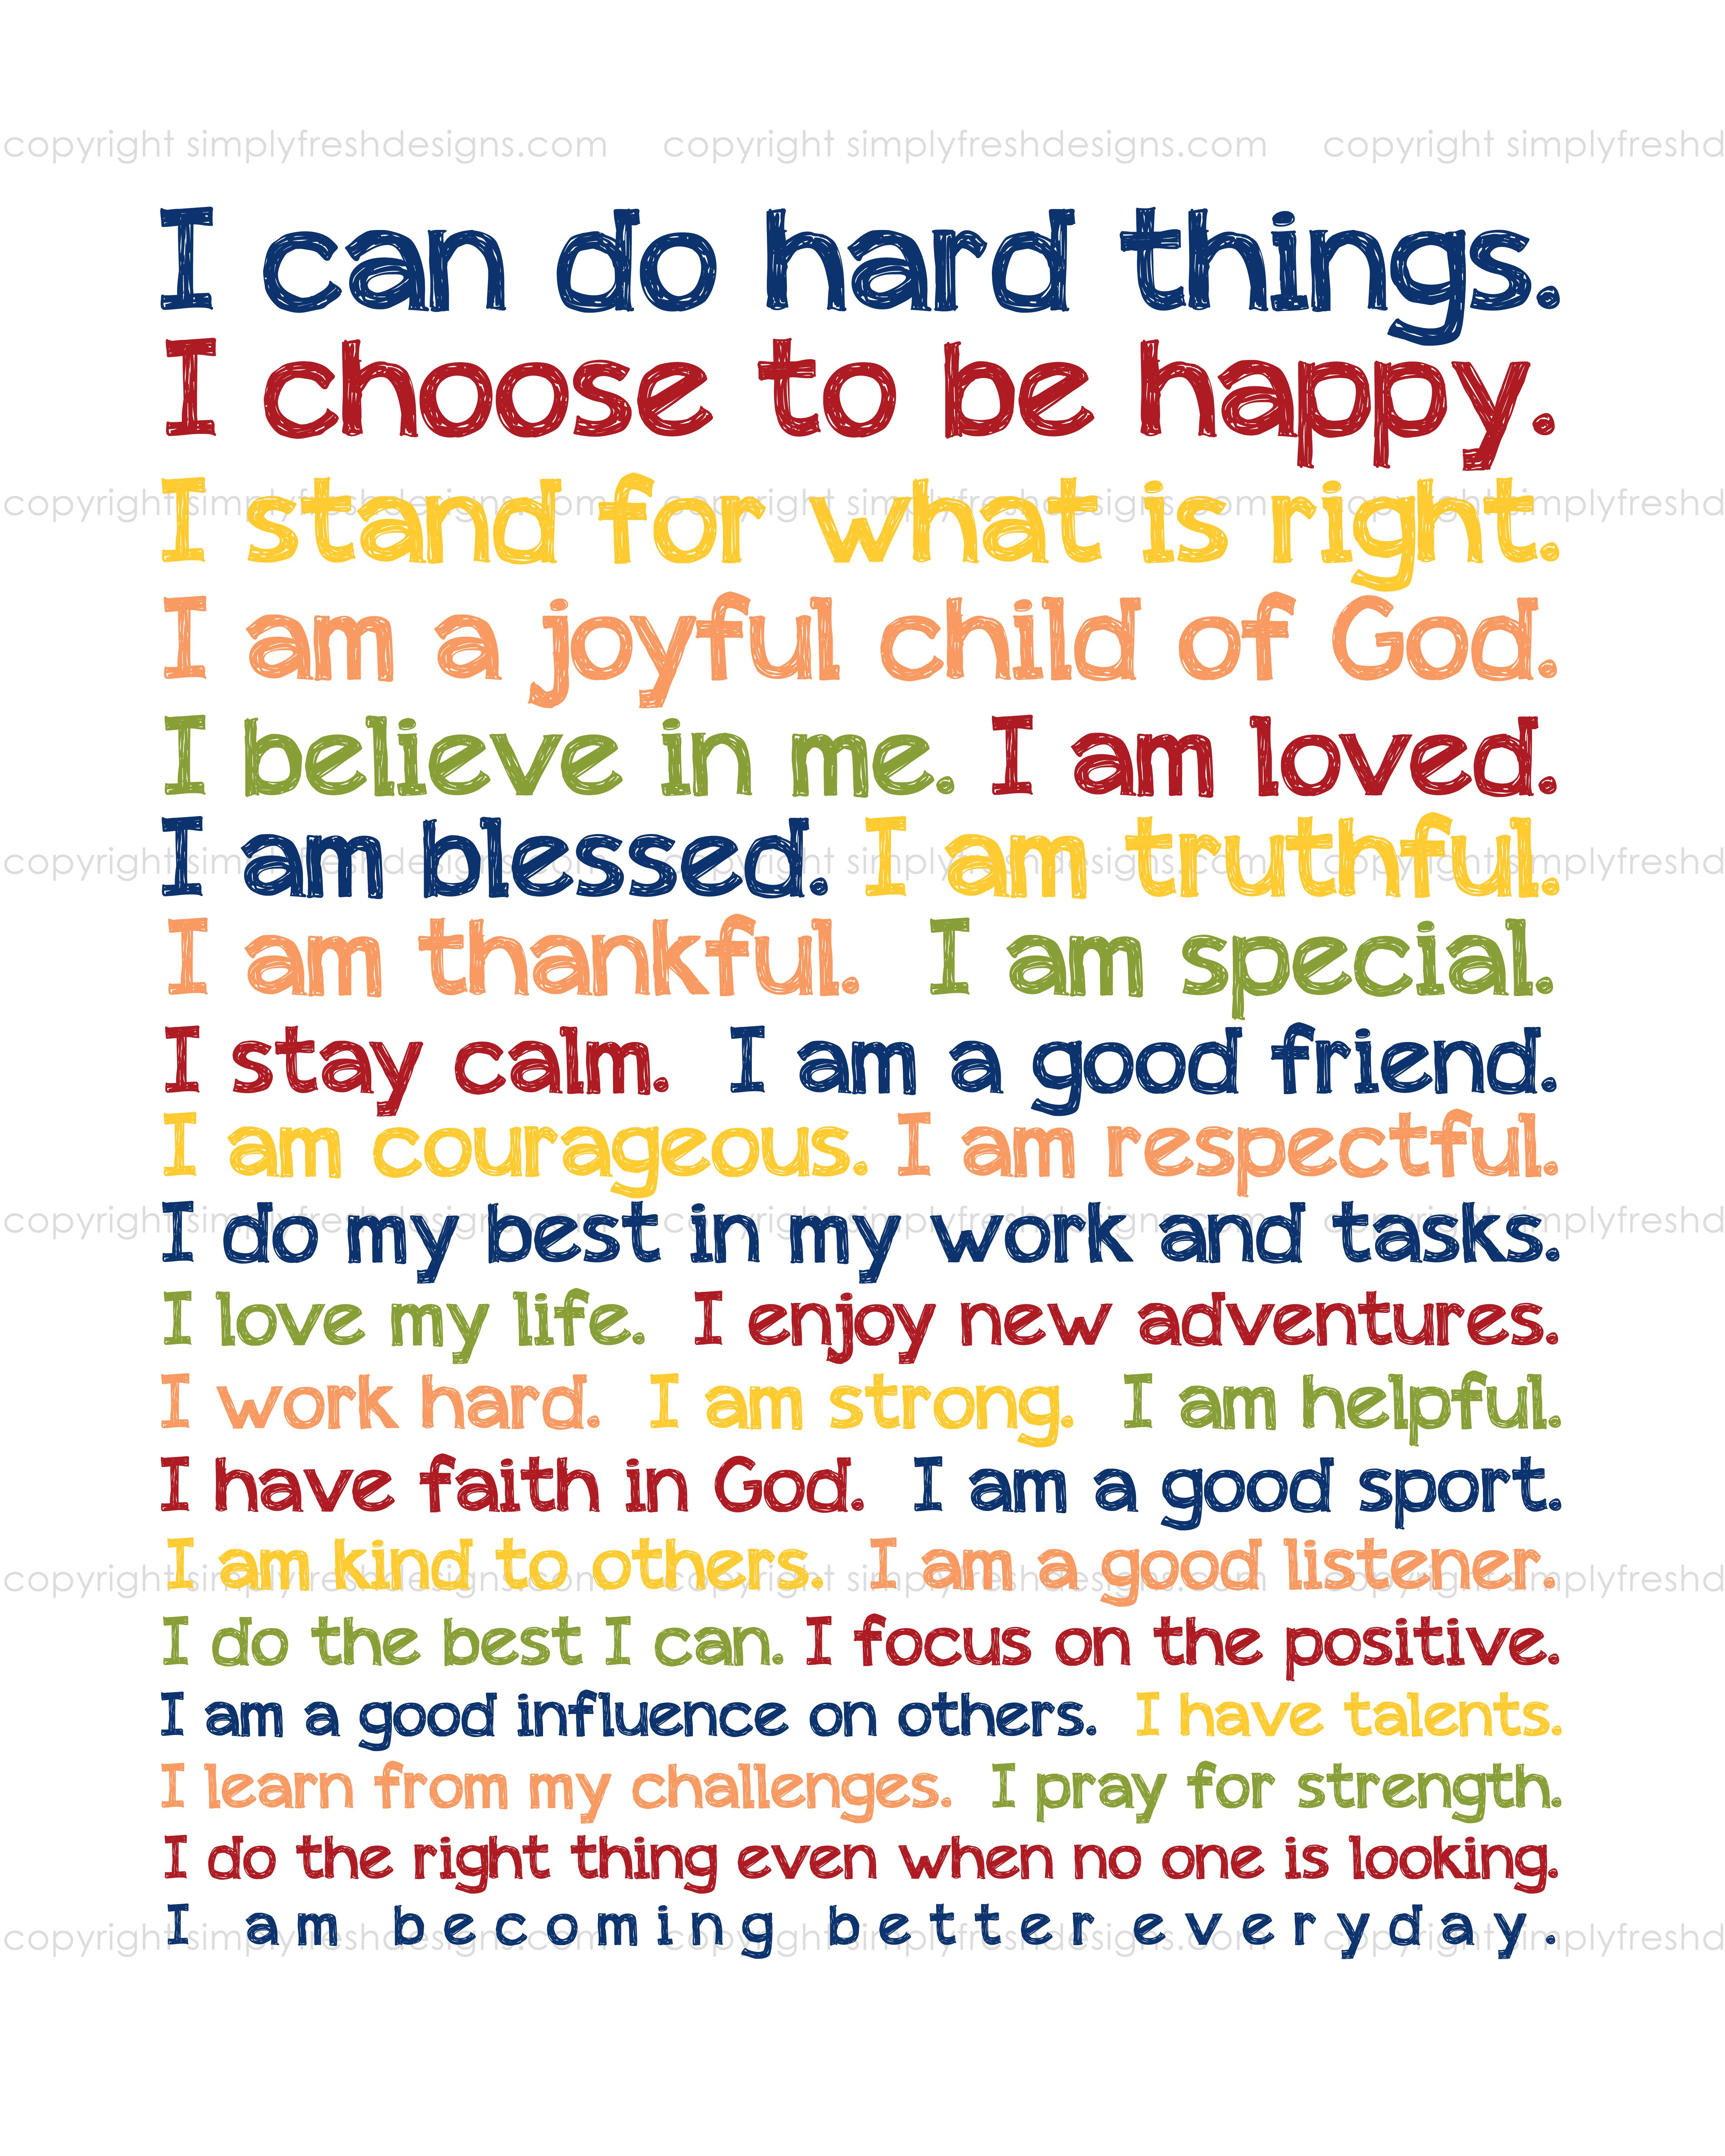 Inspirational Quotes About Loving Children Empowering Statements Via Jimmyandheather  Baby And Kids